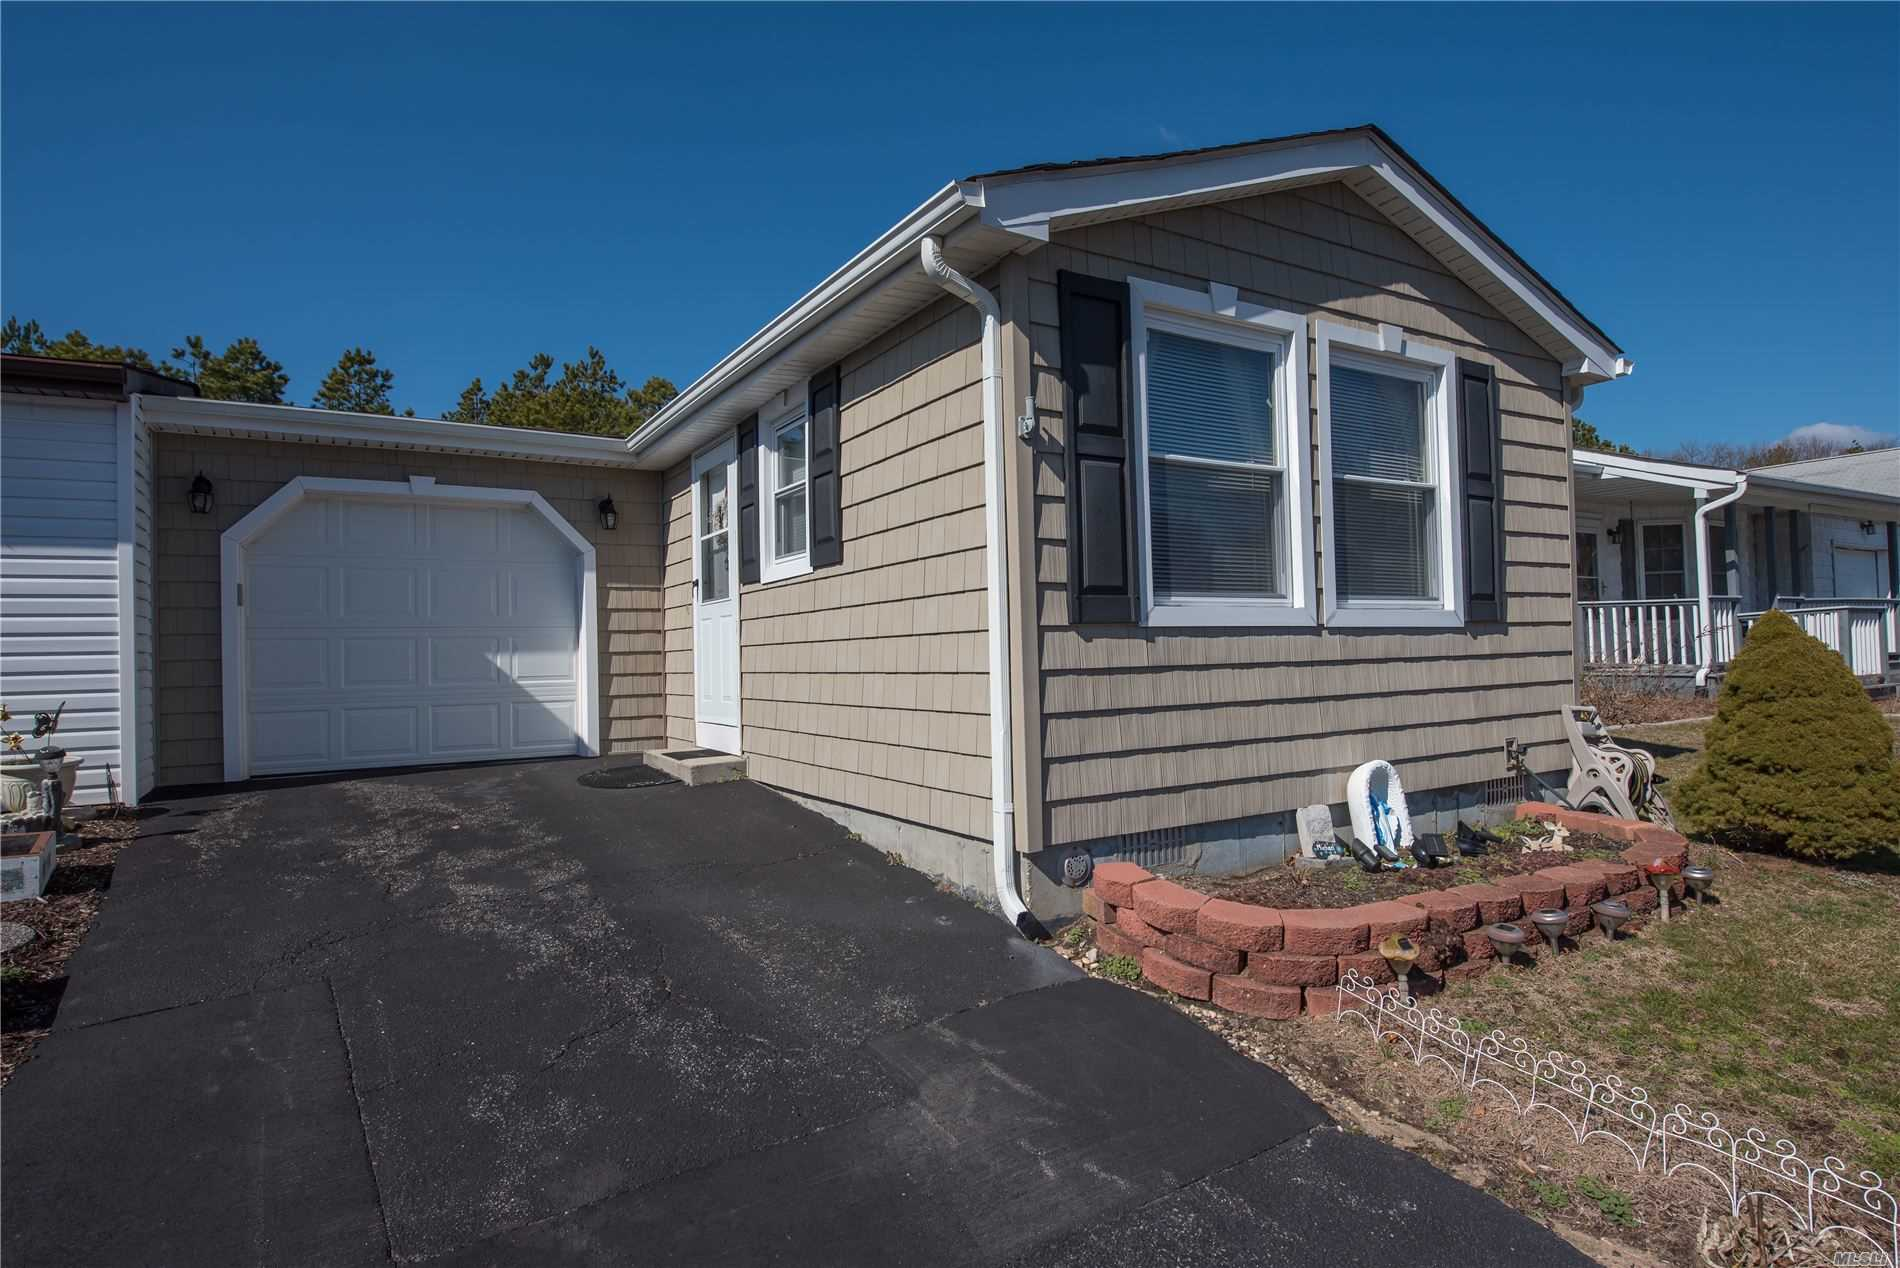 Property for sale at 95 W Village Circle, Manorville NY 11949, Manorville,  New York 11949